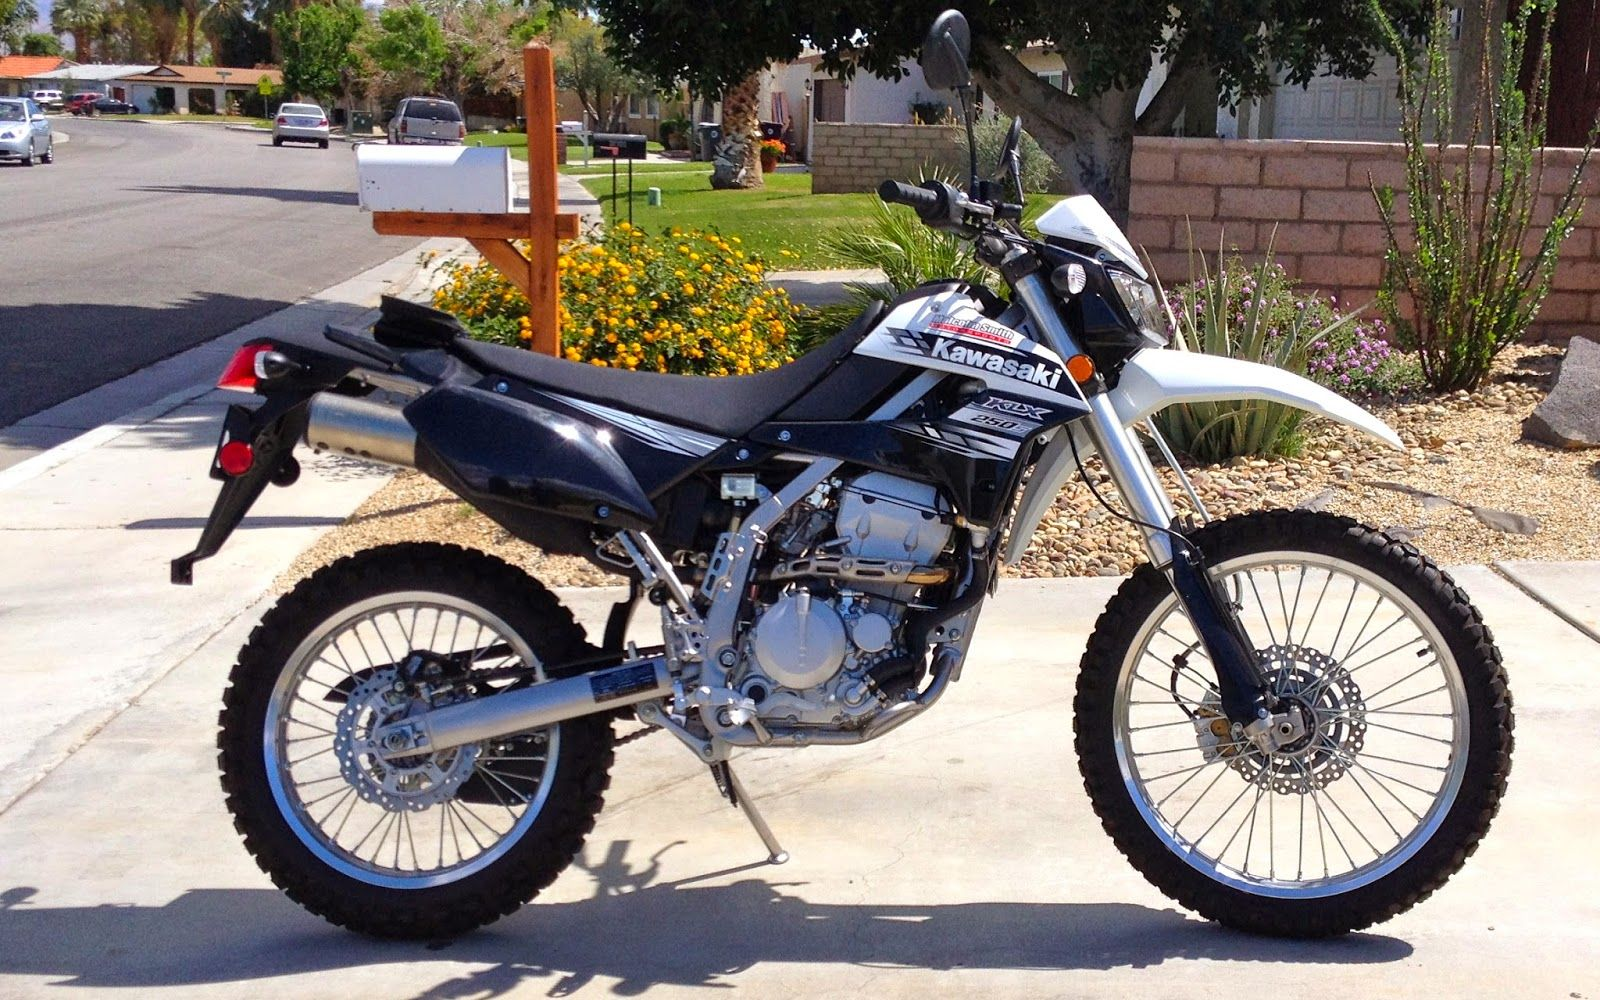 kawasaki klx250s getting to know my kawasaki klx 250s first ride kawasaki d tracker klx. Black Bedroom Furniture Sets. Home Design Ideas